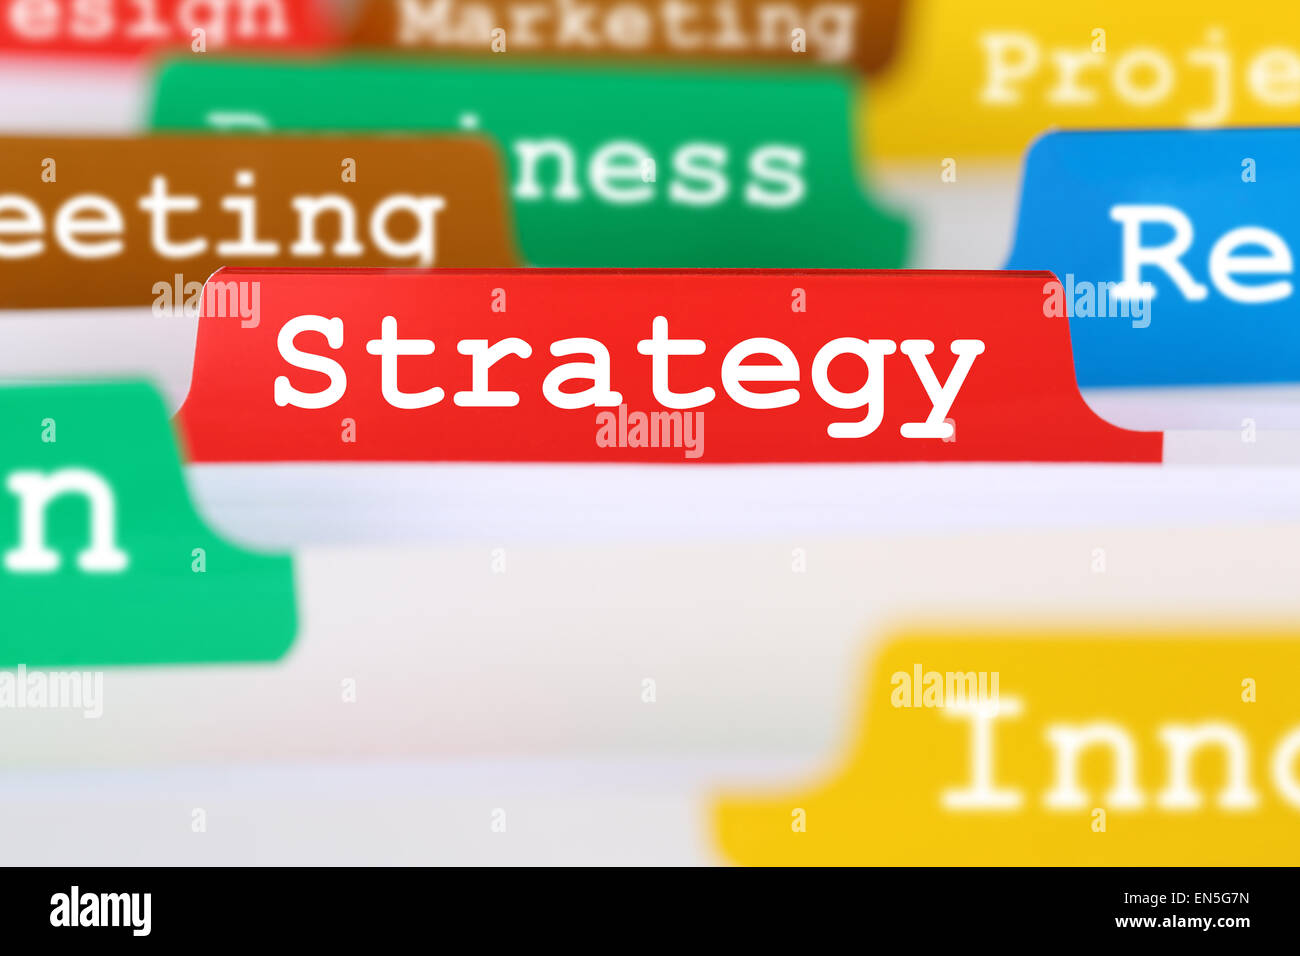 Successful strategy and development of a company on register in business services documents - Stock Image